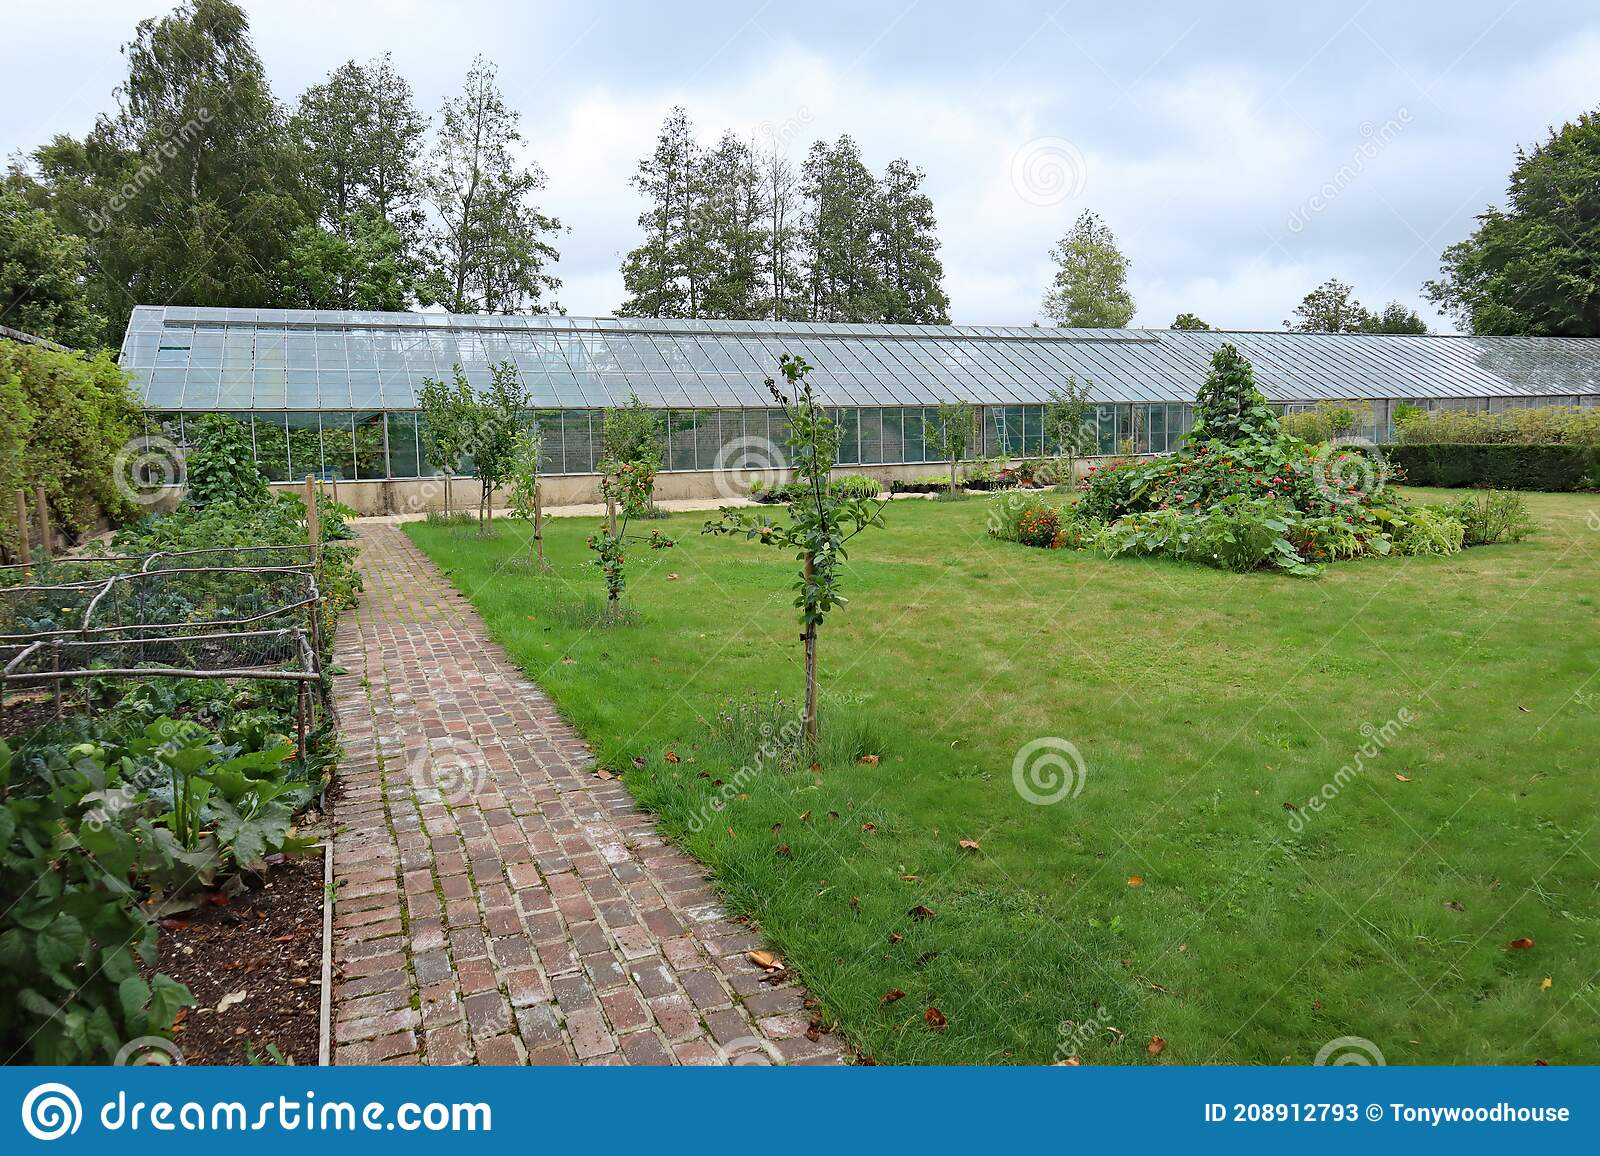 A Large Greenhouse In The Kitchen Garden Of An English Country House Stock Image Image Of Industrial Nursery 208912793